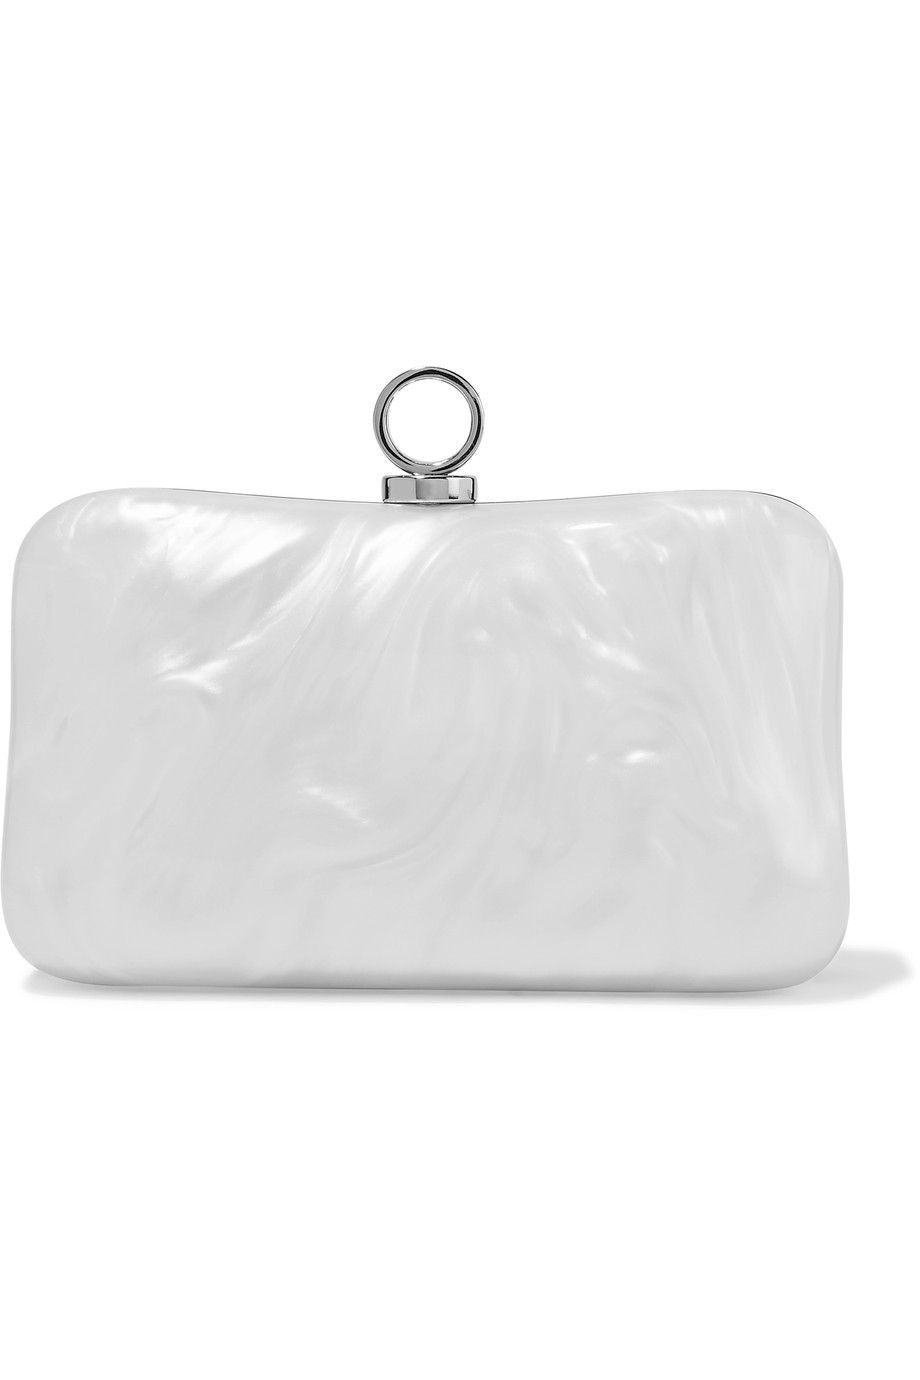 HALSTON HERITAGE Marble-effect acrylic clutch.  halstonheritage  bags   shoulder bags   284688064ed37